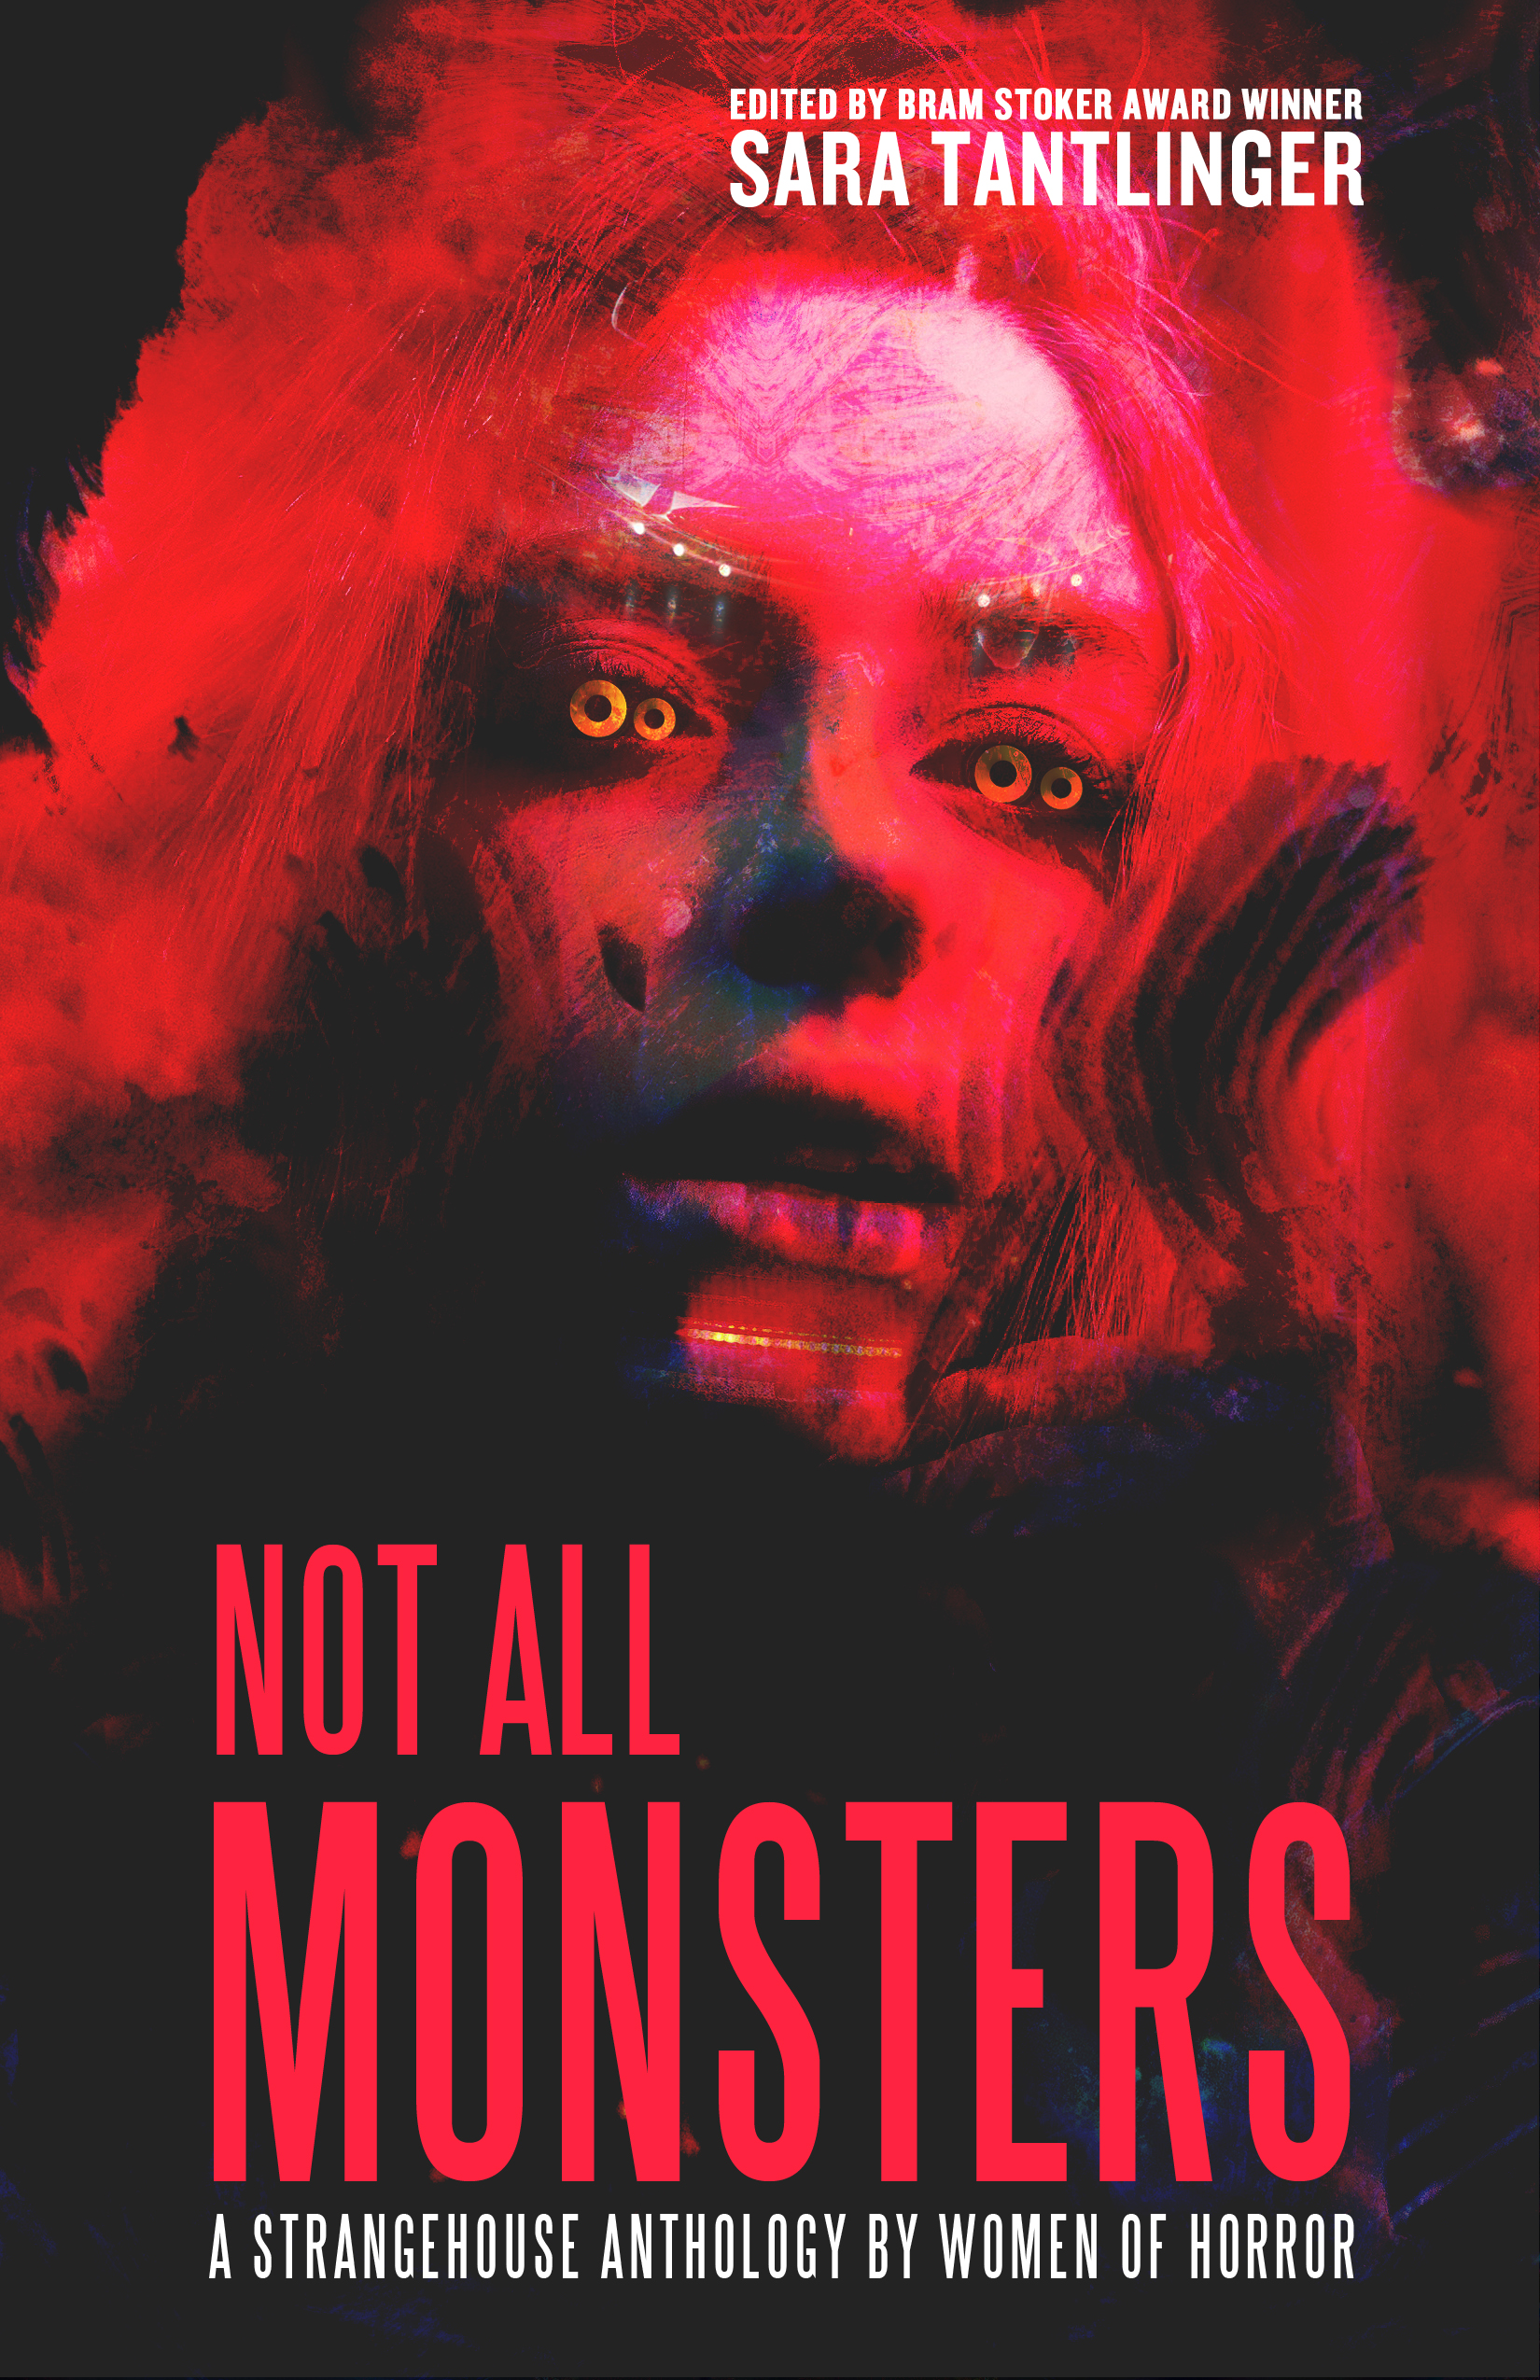 Not All Monsters